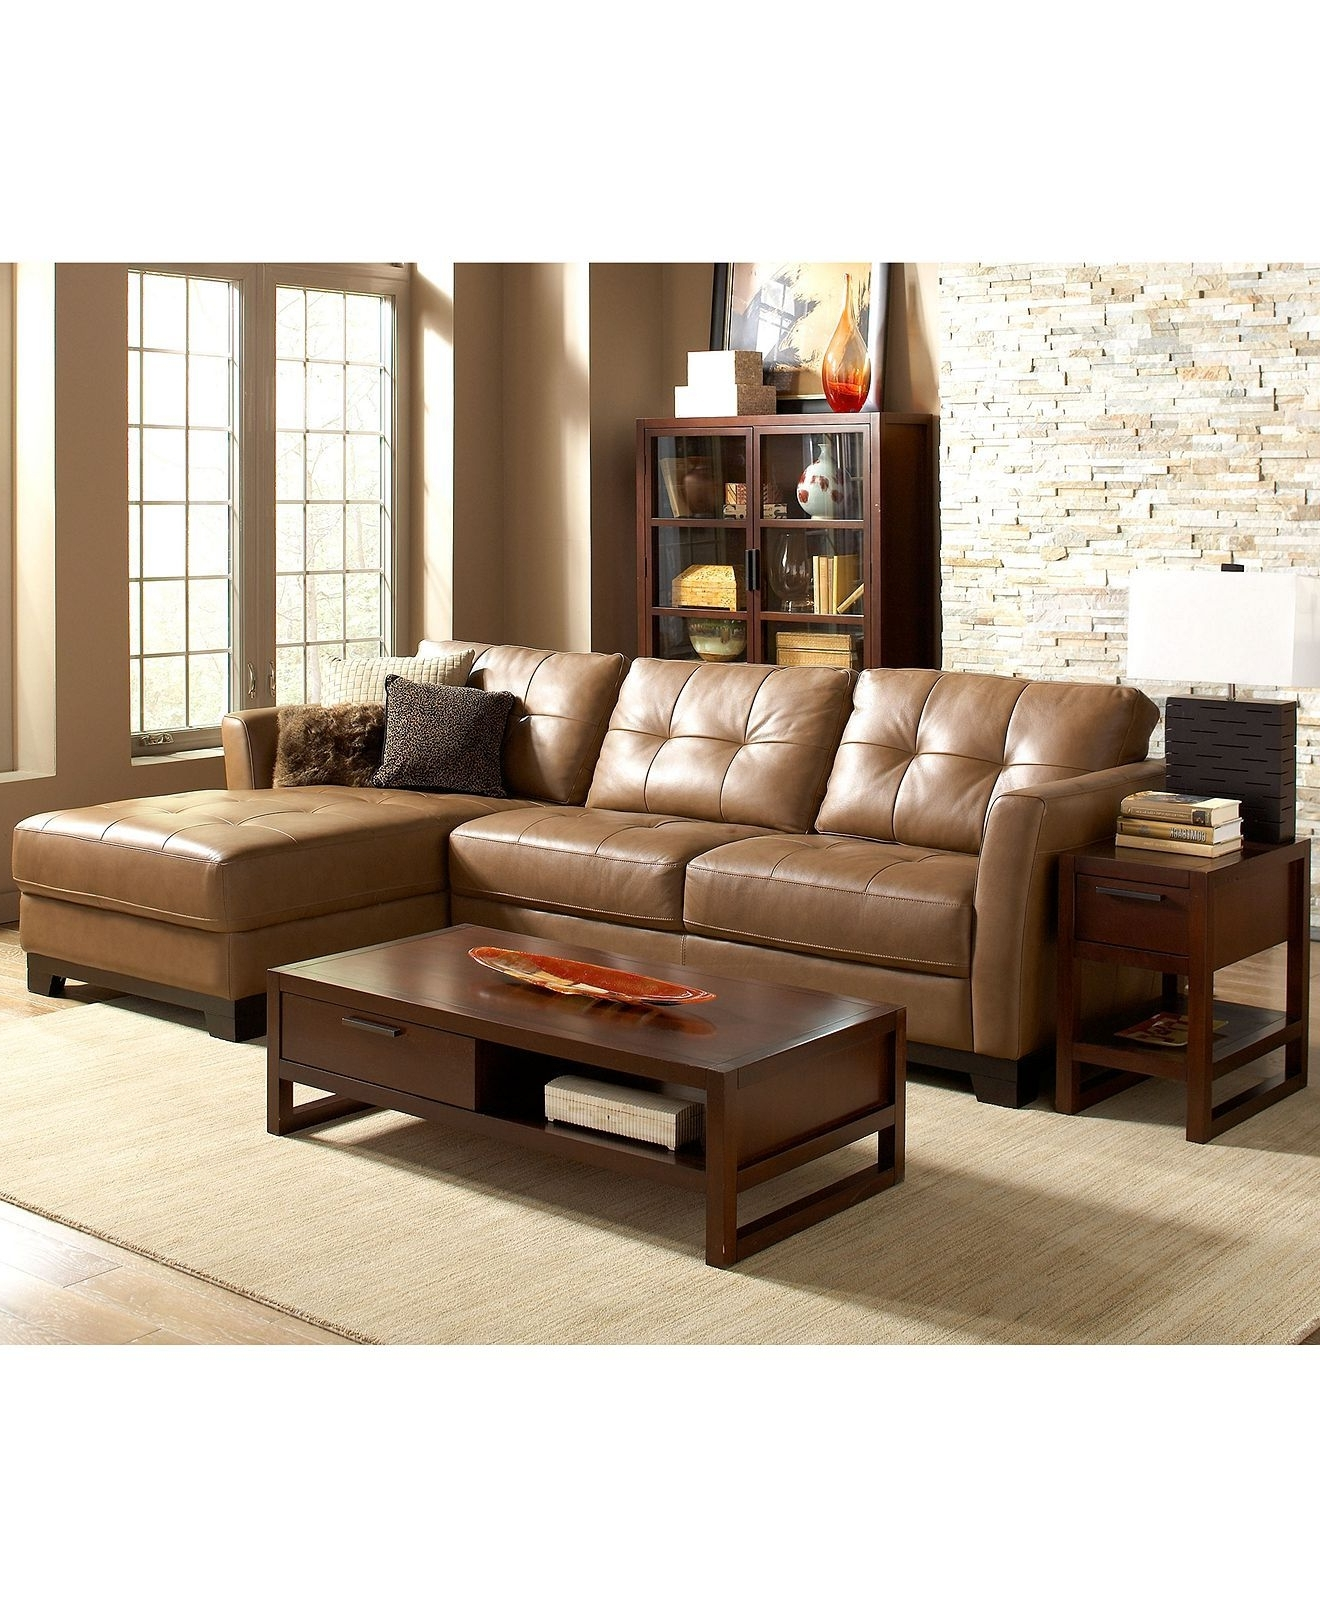 Martino Leather Sectional Living Room Furniture Sets & Pieces Within Latest Economax Sectional Sofas (View 13 of 20)